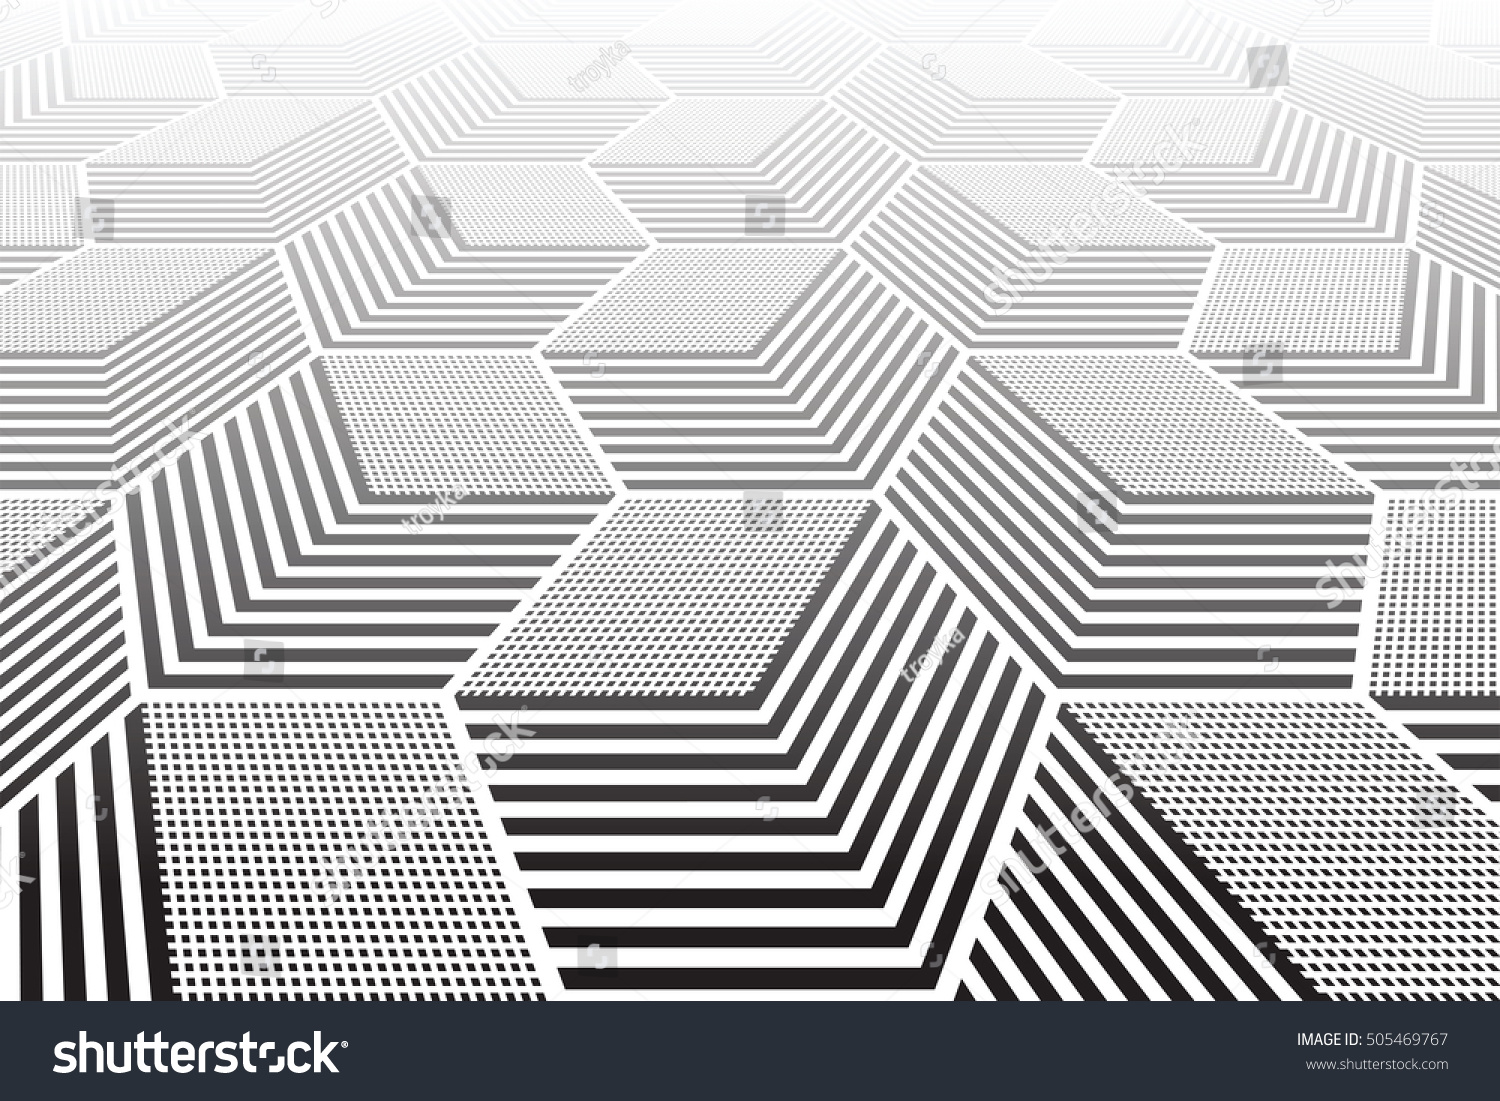 Abstract geometric background 3d illusion vector stock for Geometric illusion art